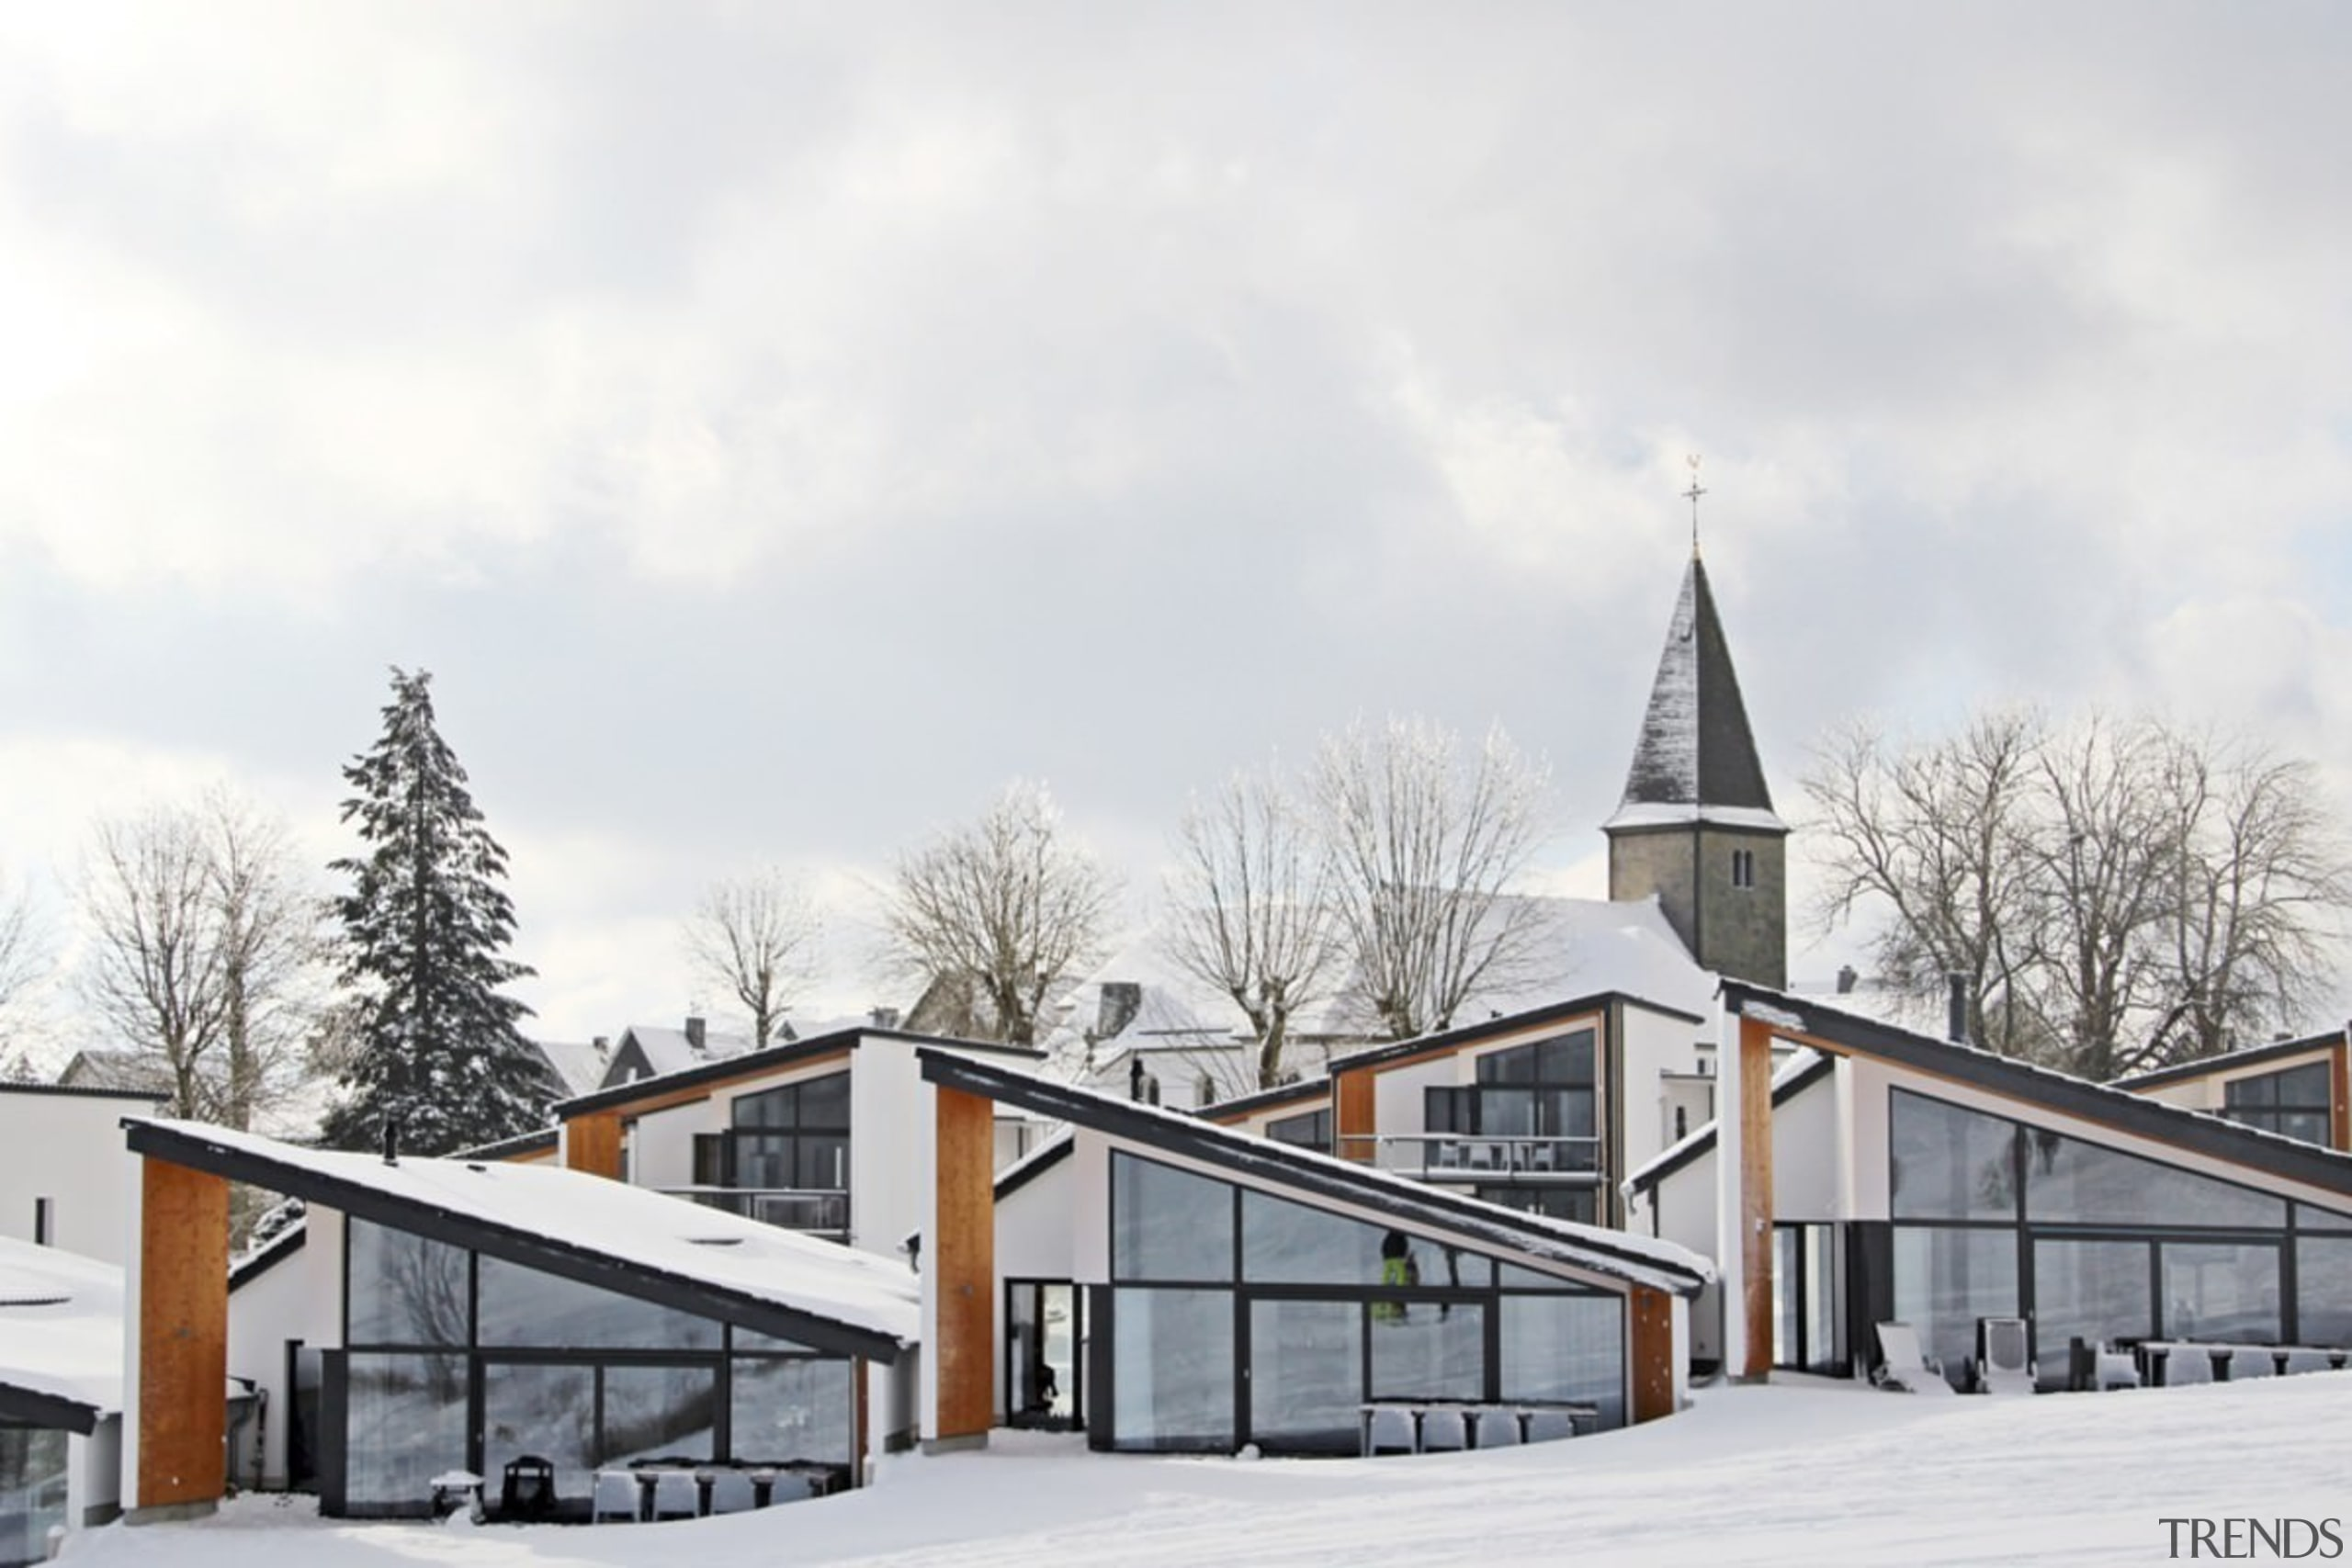 A view of the villas in winter - architecture, building, facade, home, house, property, real estate, residential area, sky, snow, winter, white